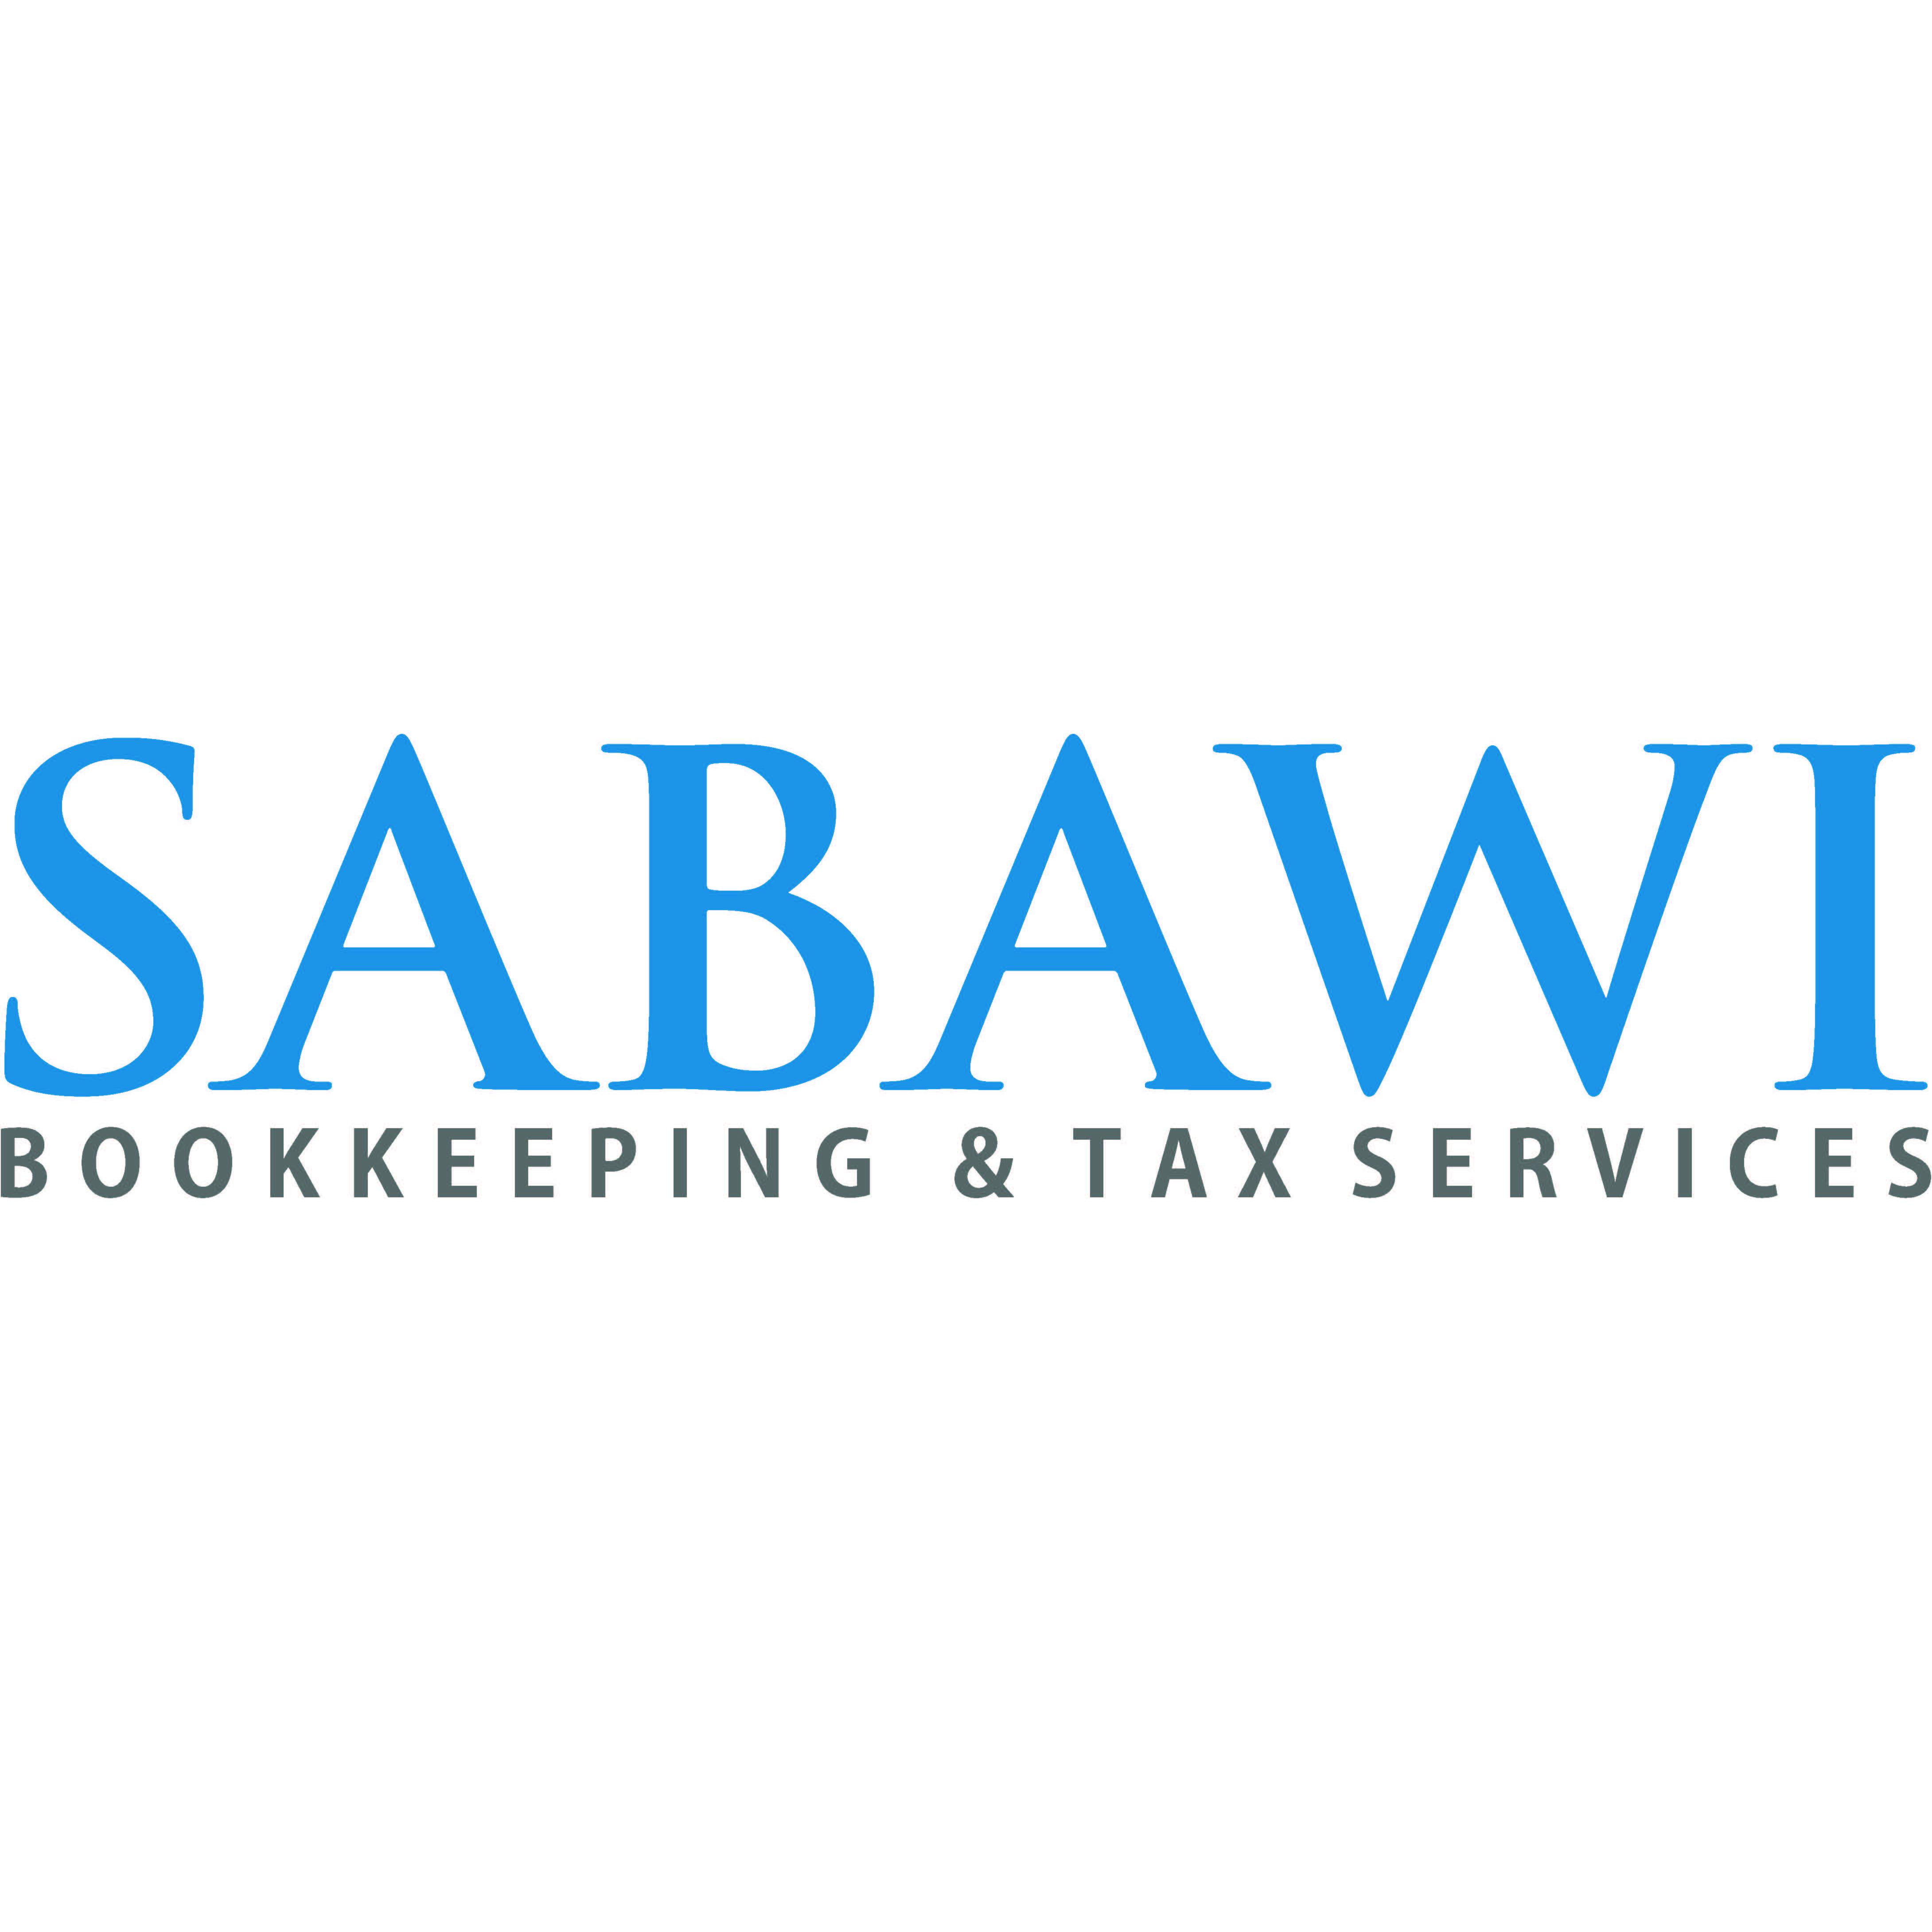 Sabawi Bookkeeping & Tax Services